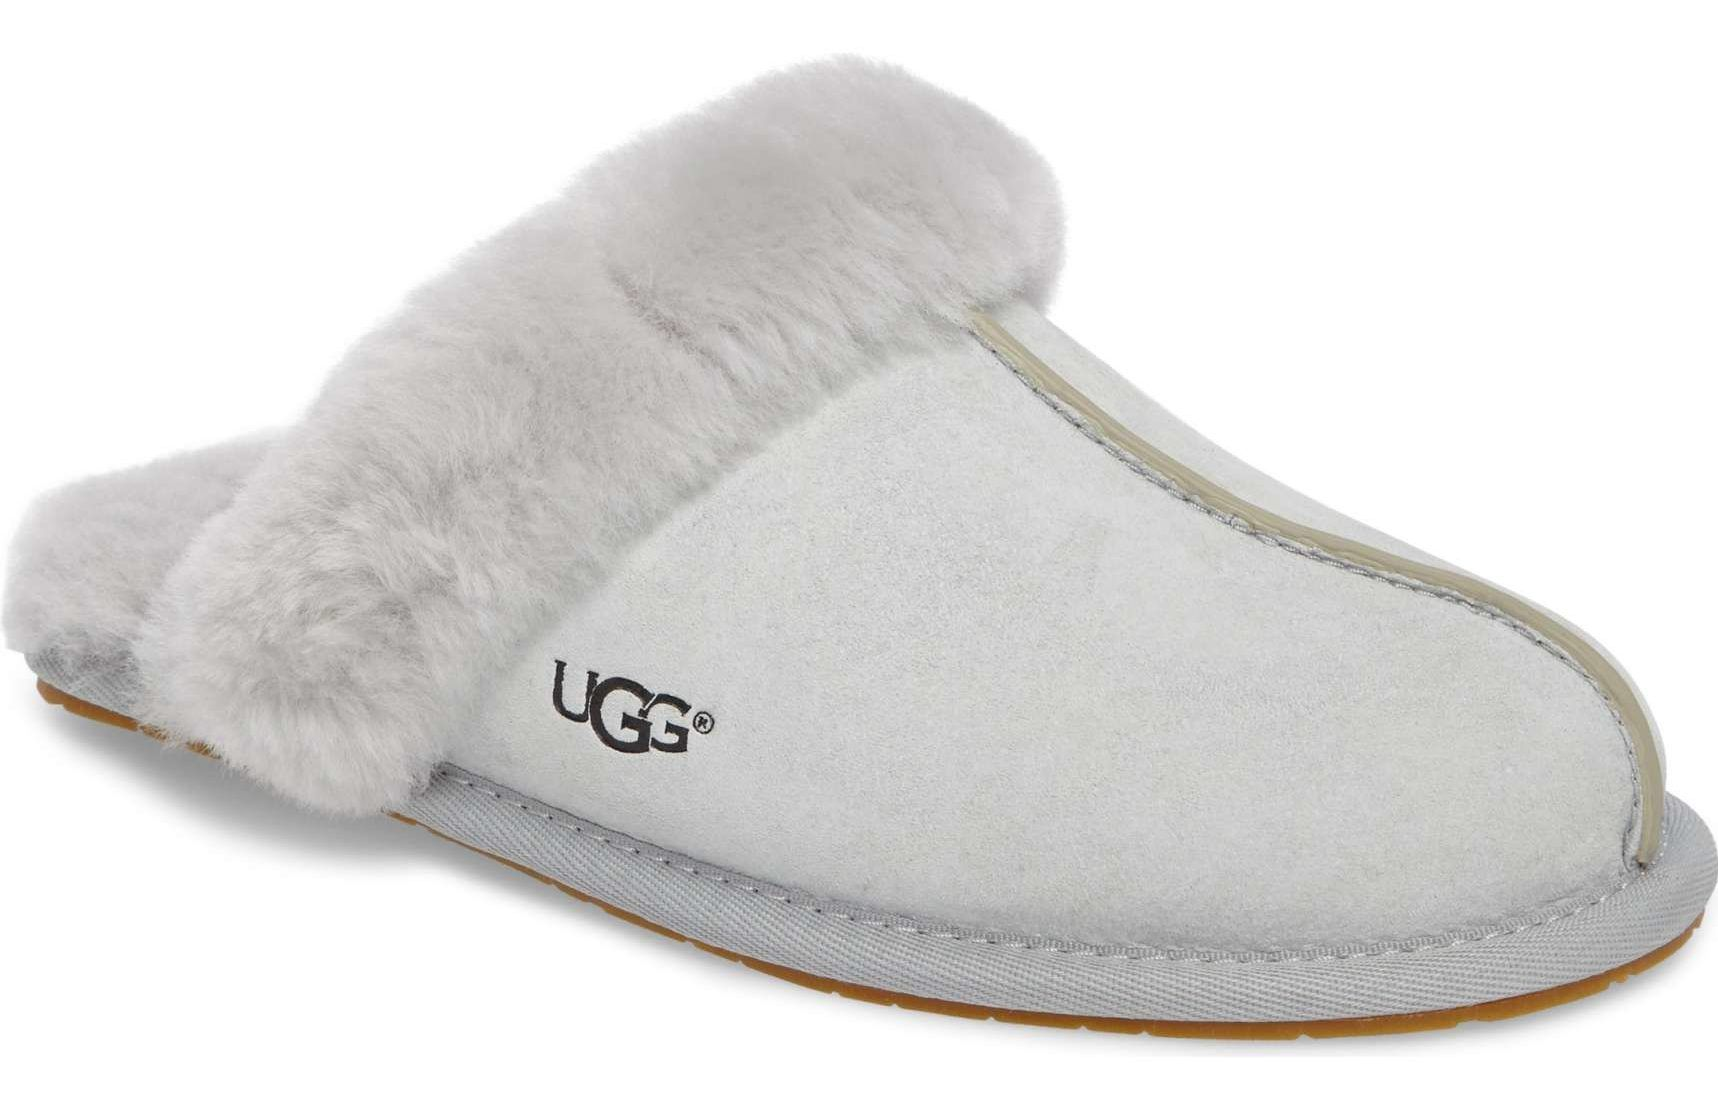 Christmas Gift for Wife 2017: Grey Ugg Slippers For Her 2018 ...